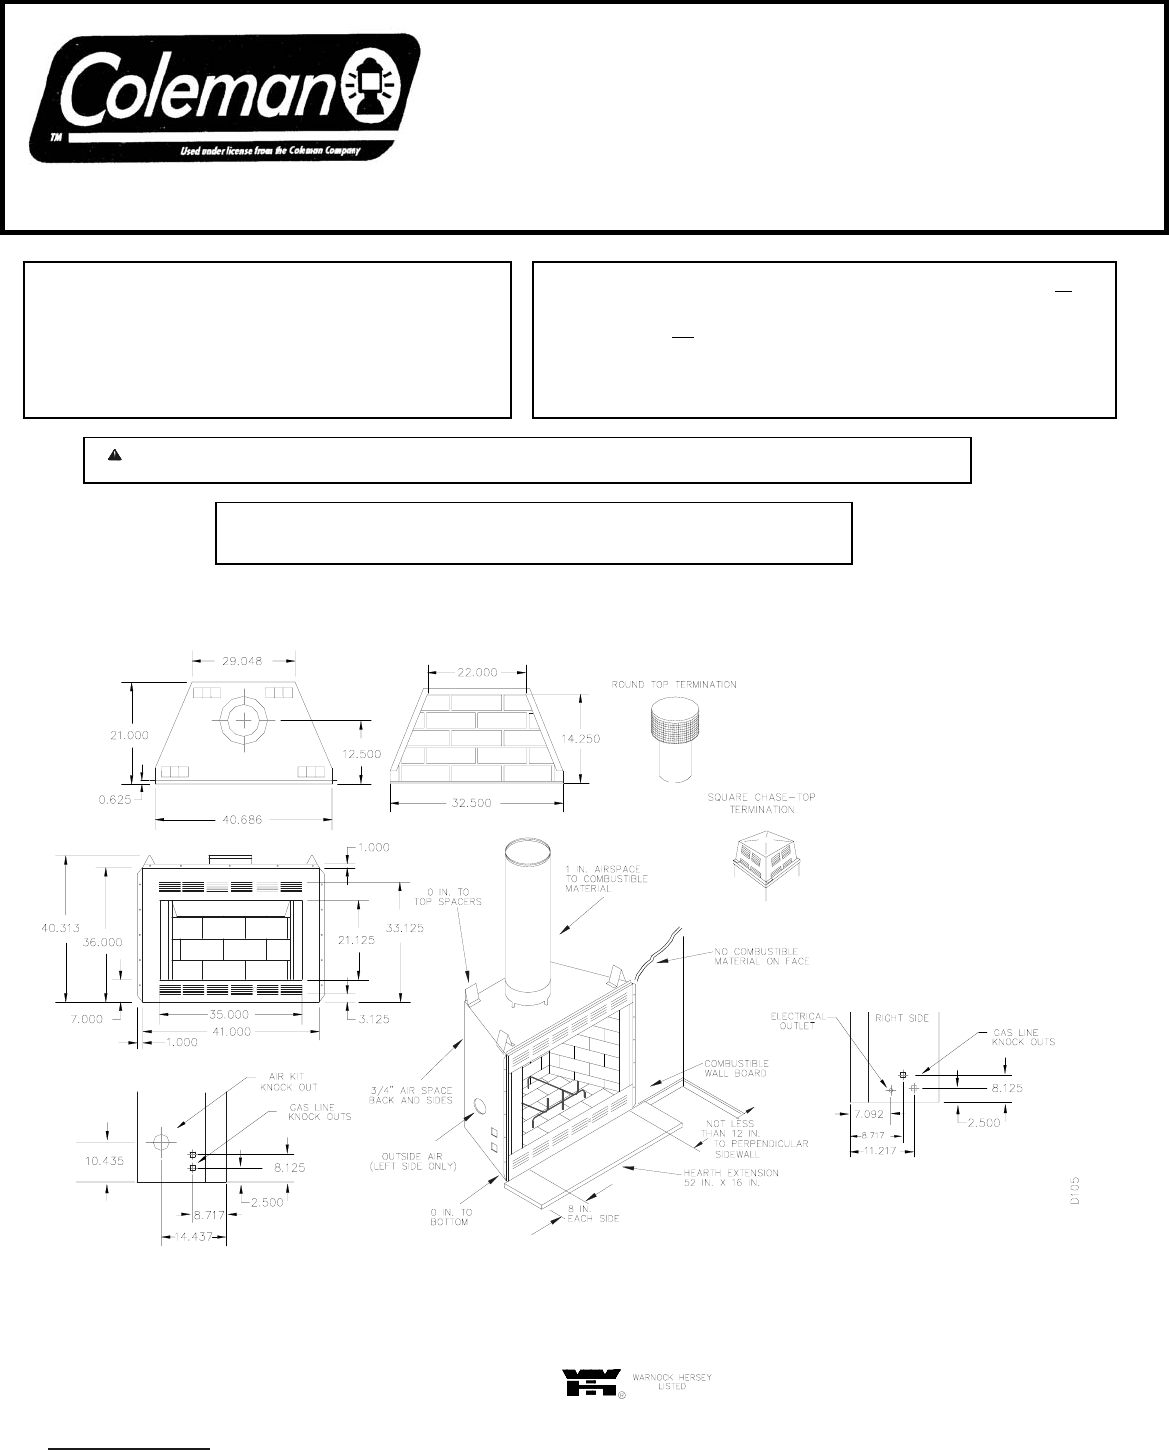 Appliance manuals and free pdf instructions. Find the user manual you need for your home appliance products and more at ManualsOnline.